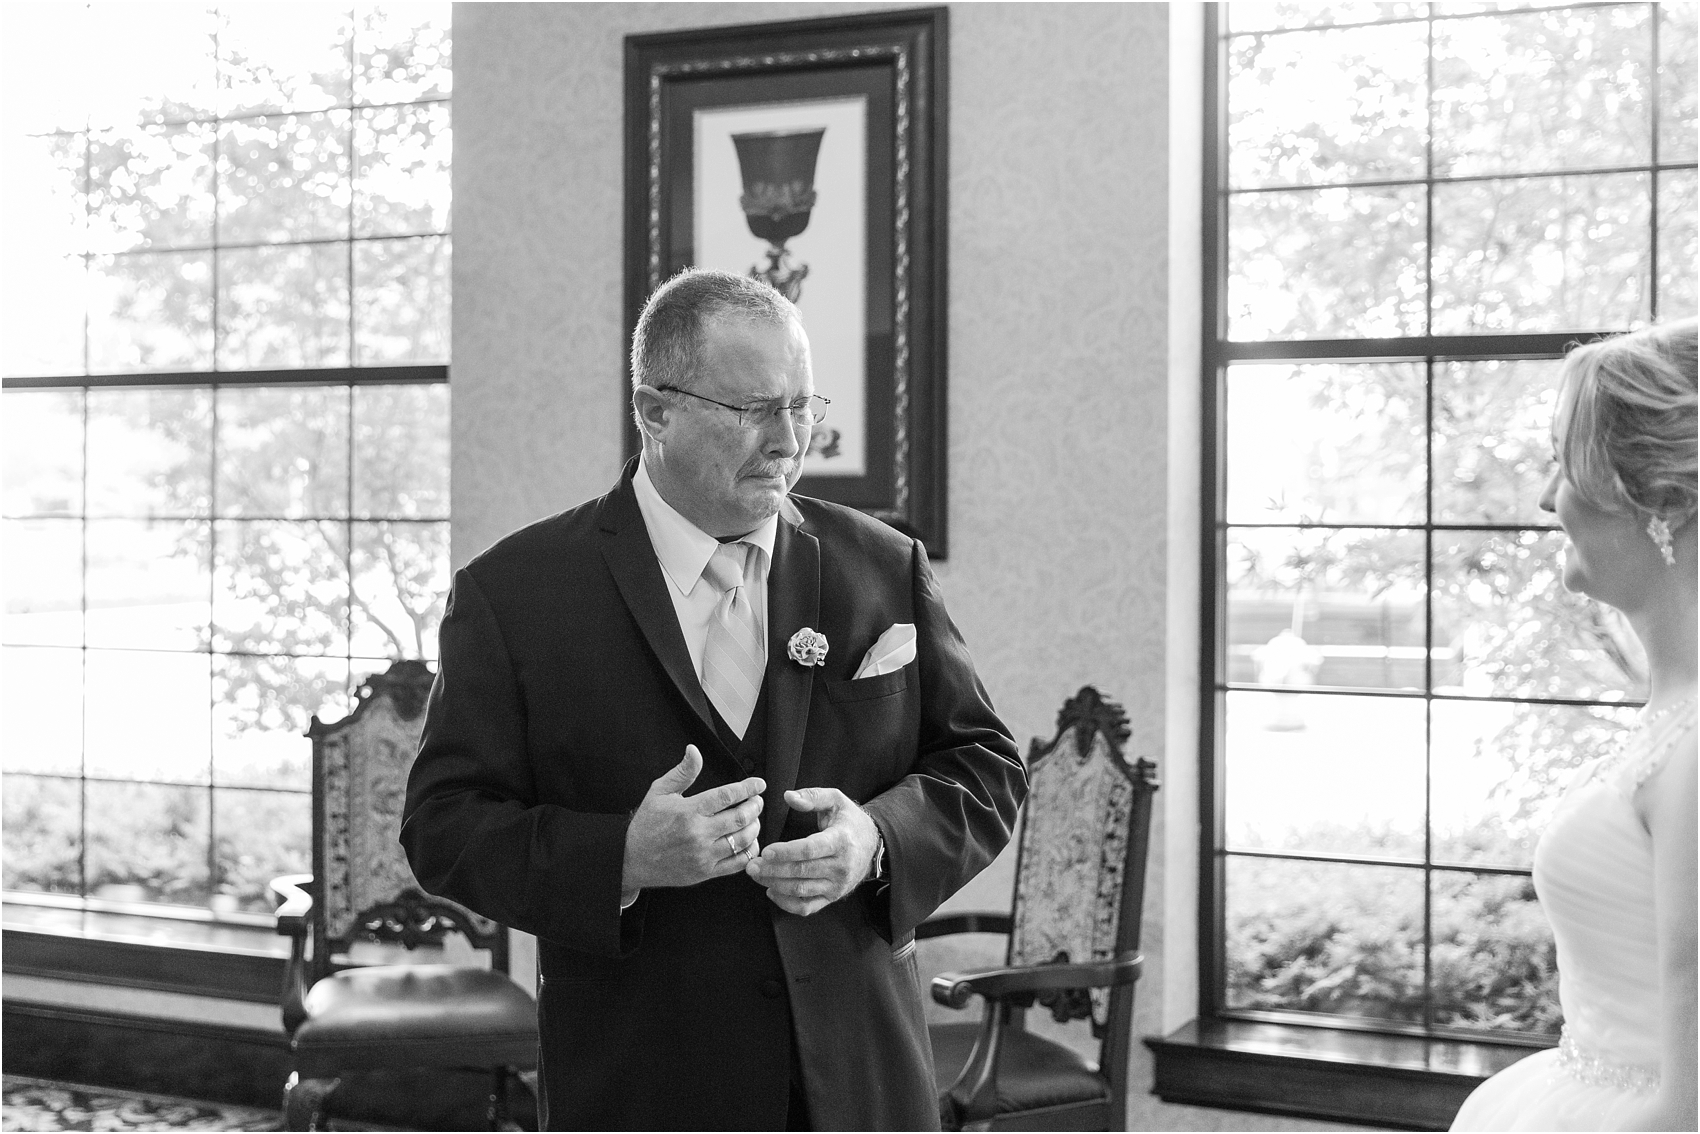 lord-of-the-rings-inspired-wedding-photos-at-crystal-gardens-in-howell-mi-by-courtney-carolyn-photography_0018.jpg